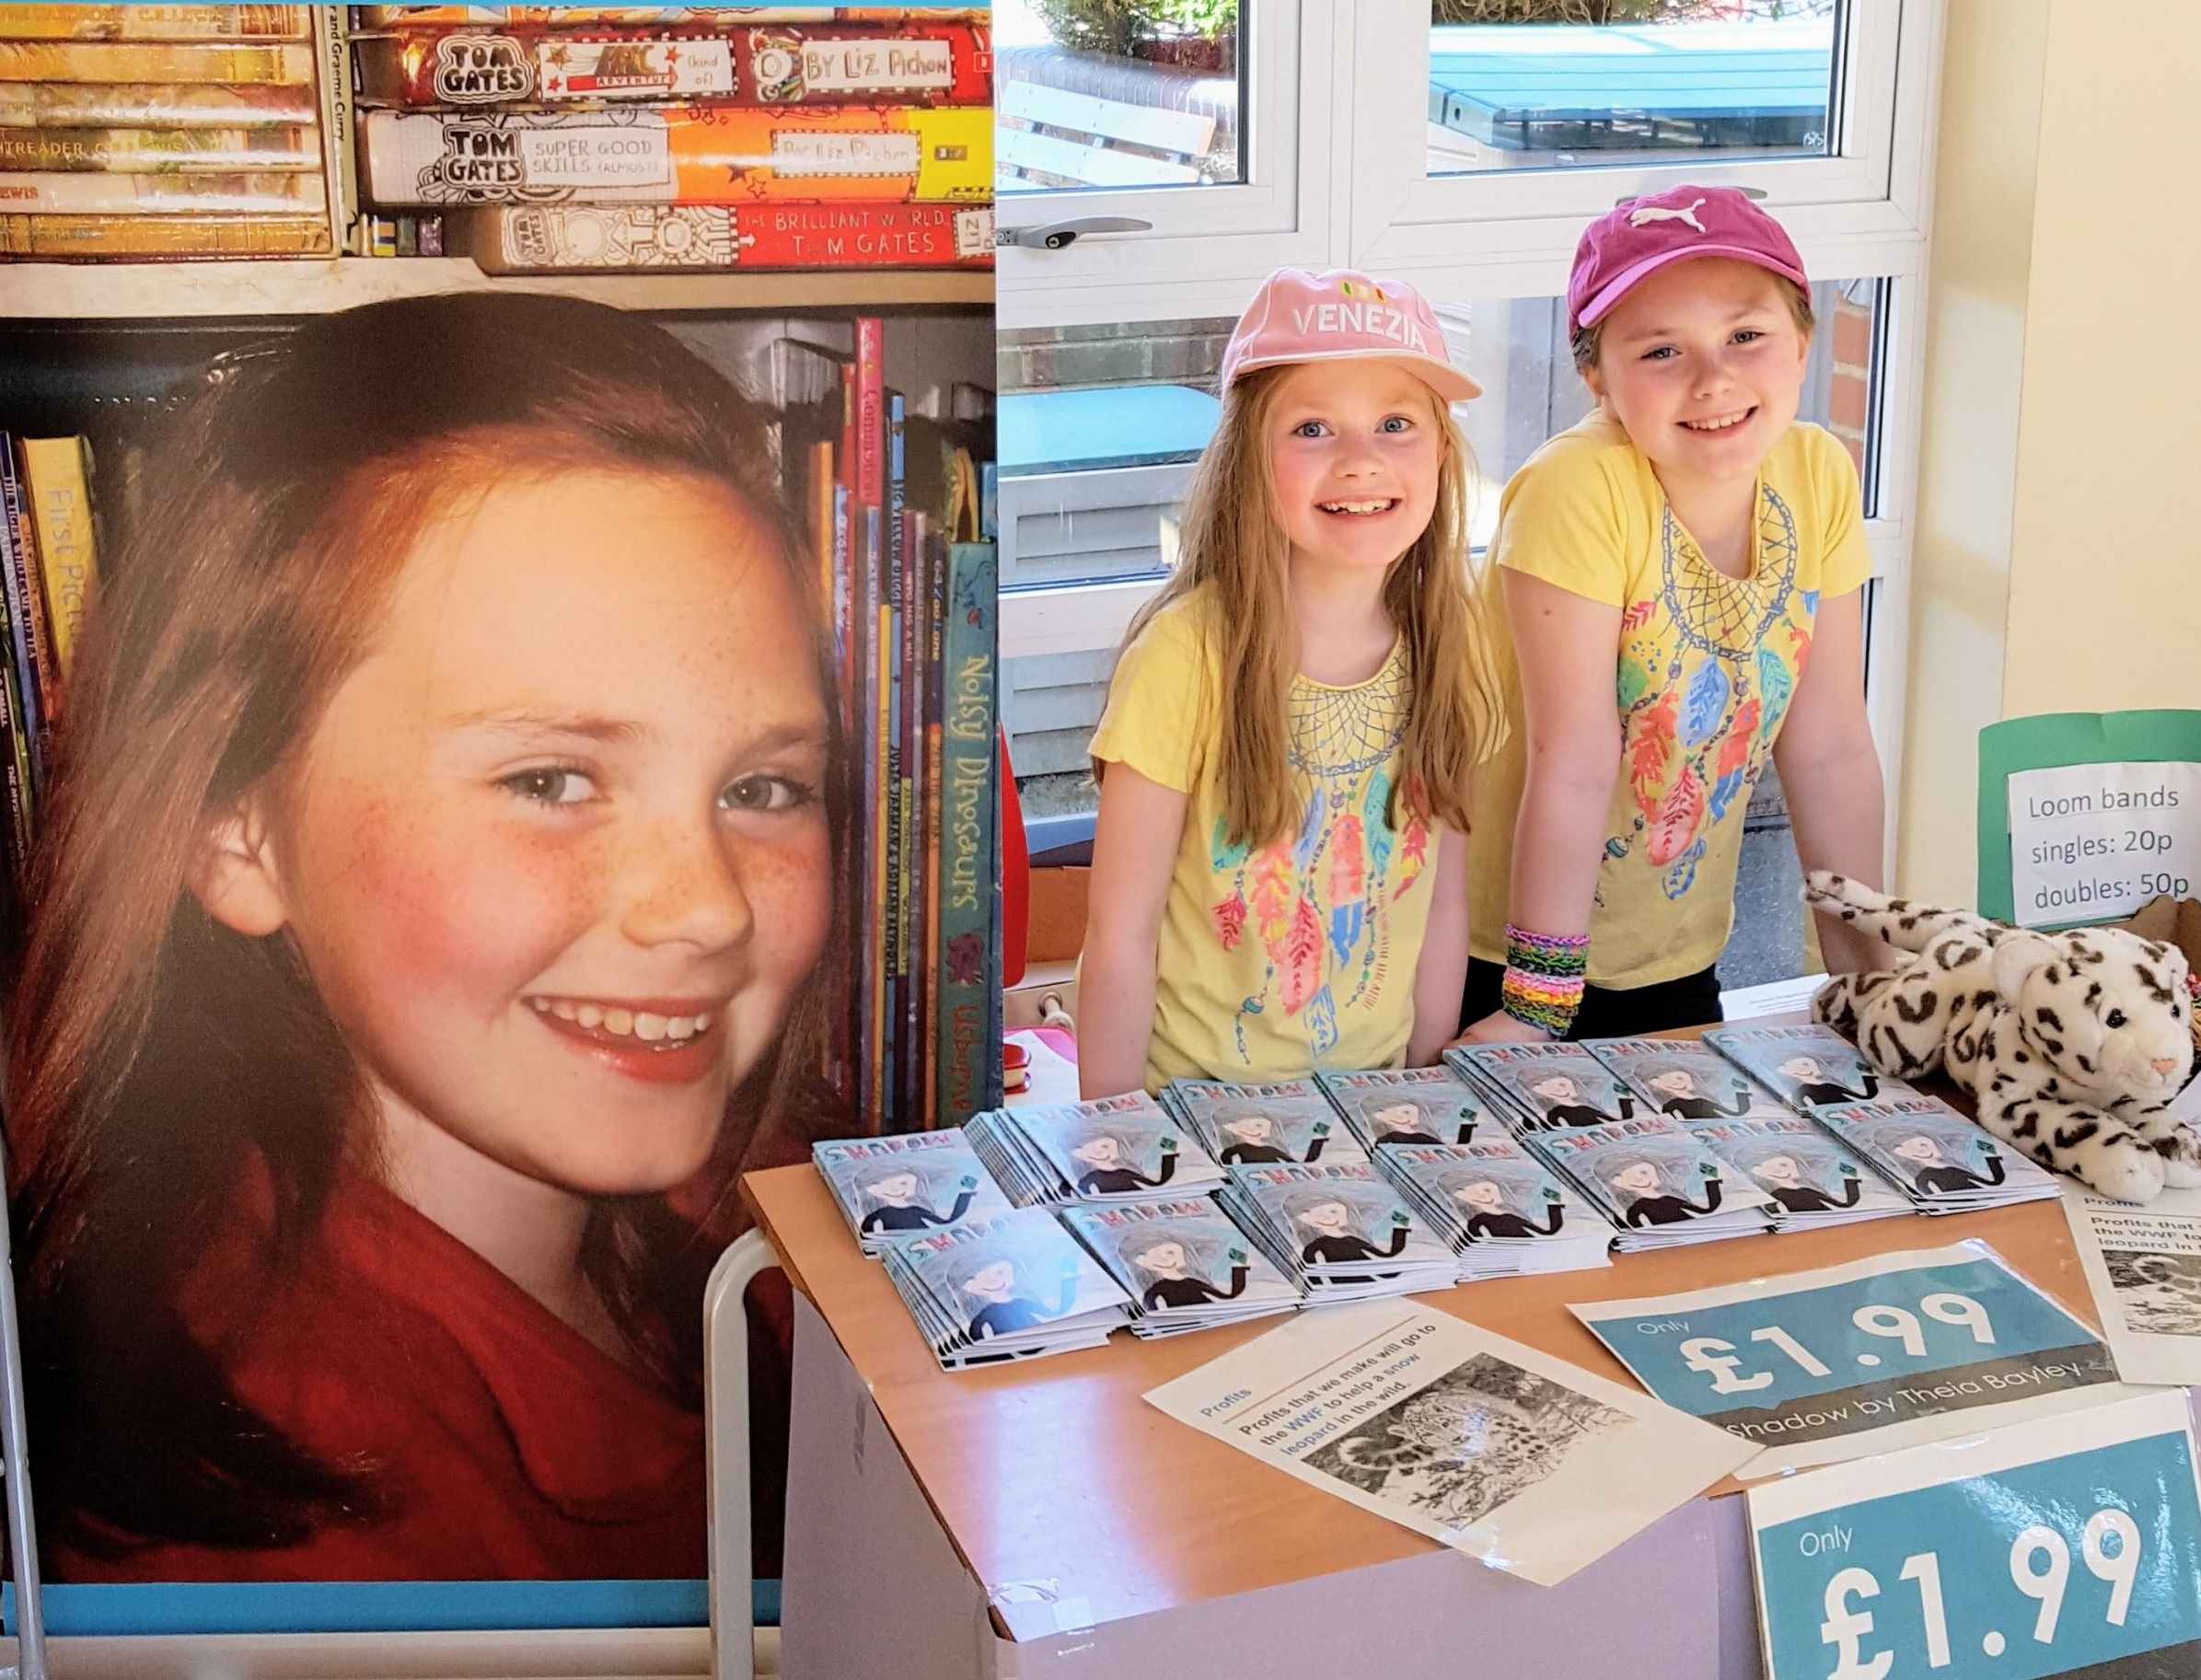 CHARITABLE: Raphaela Bayley and author Theia selling the book at Bocking Church Street Primary School